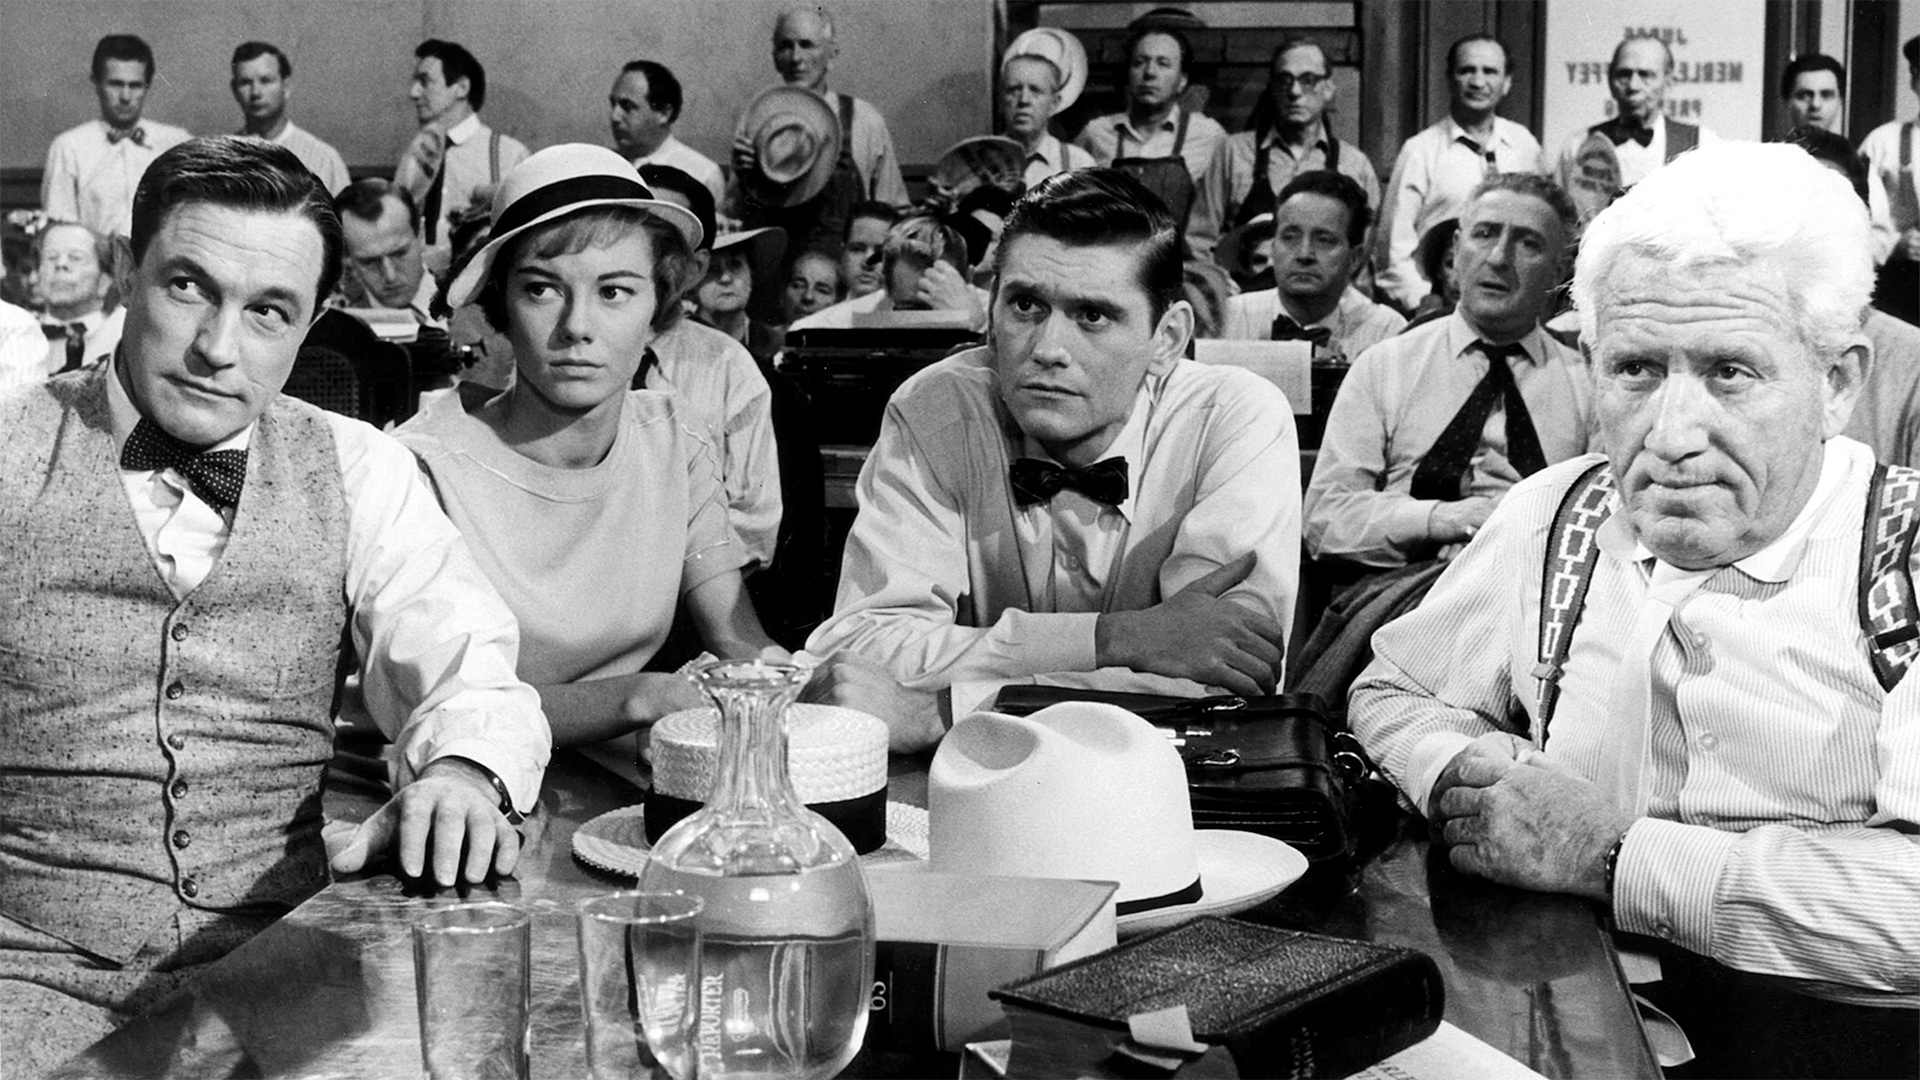 Black and white screen still of three men and a woman sitting at a table at the front of what appears to be a courtroom.